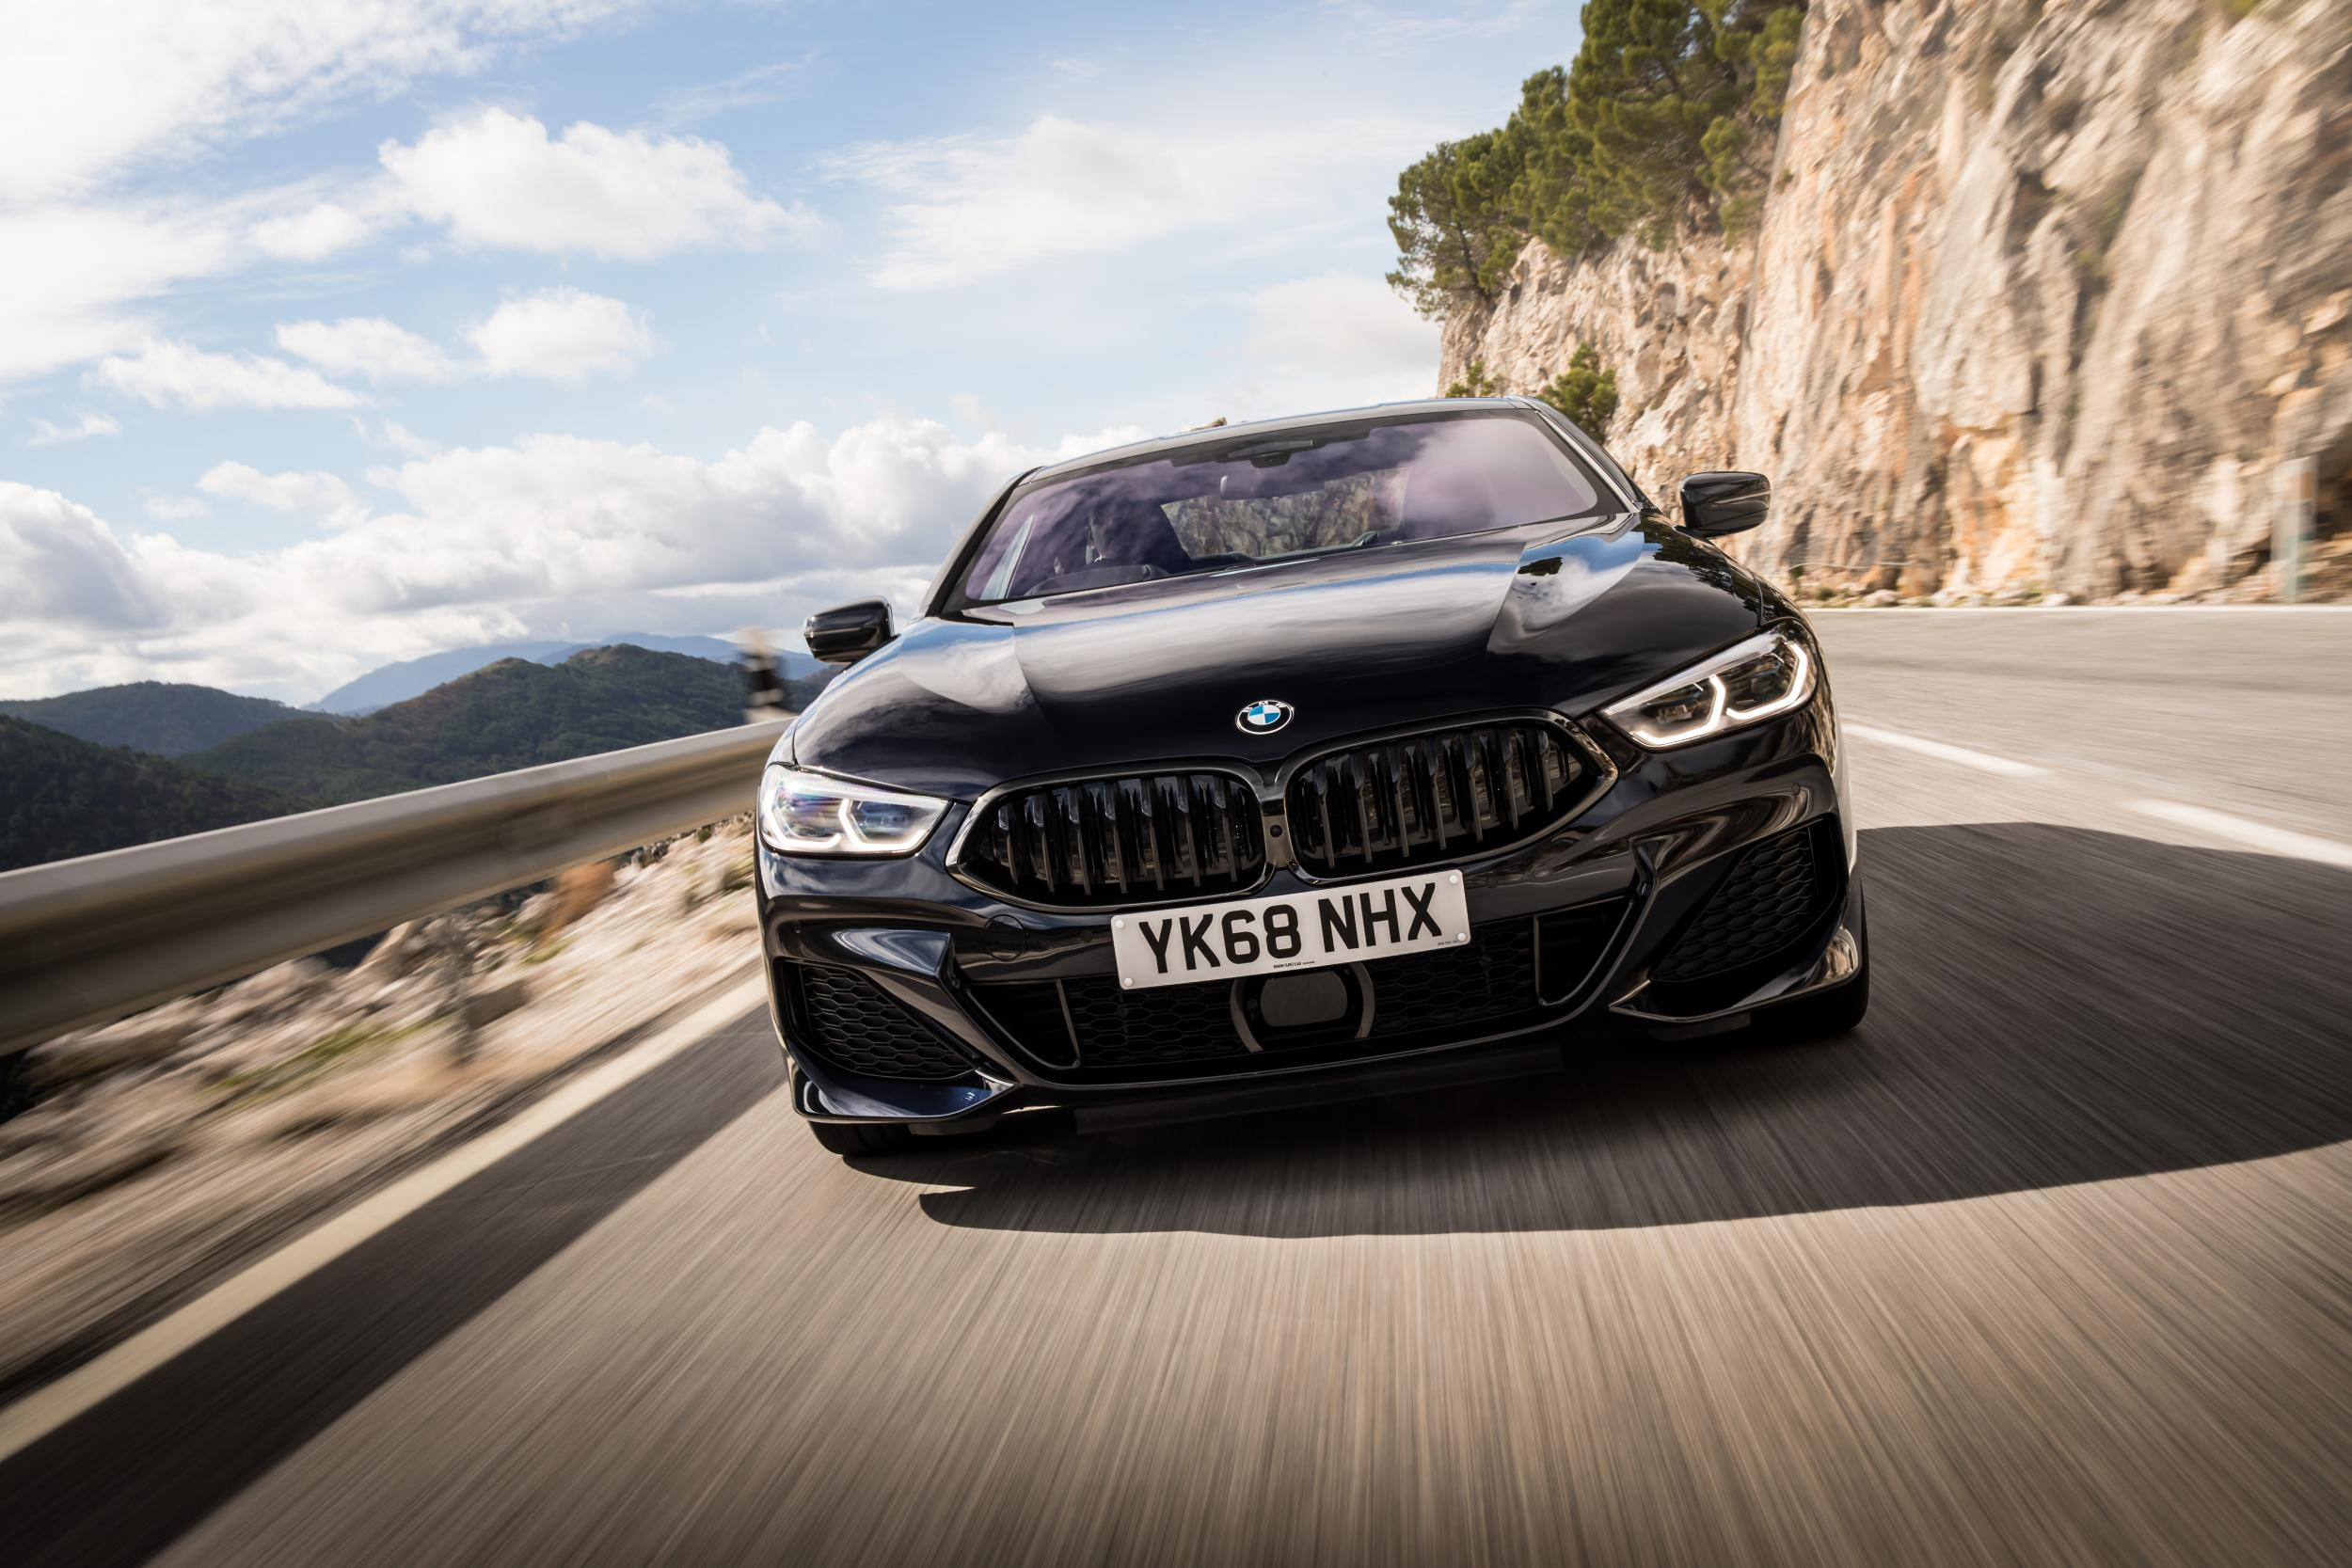 Car Review: BMW M850i – Stealth Bomber for sale, £100k, no offers